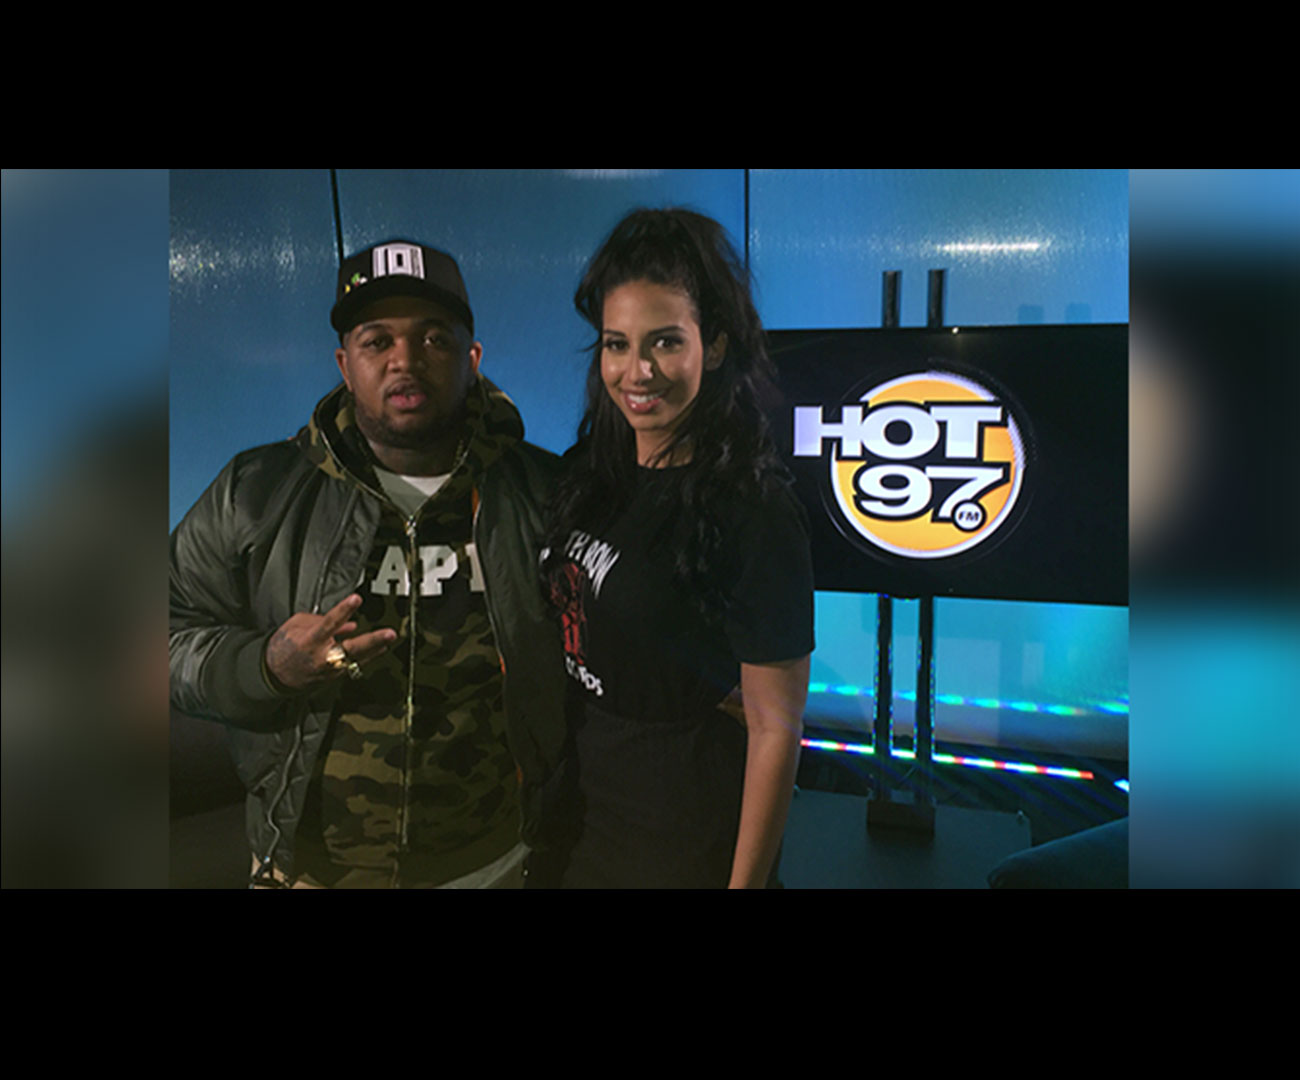 DJ Mustard on YG Shooting, Ty Dolla $ign Being Underrated & E-Mailing Jay Z